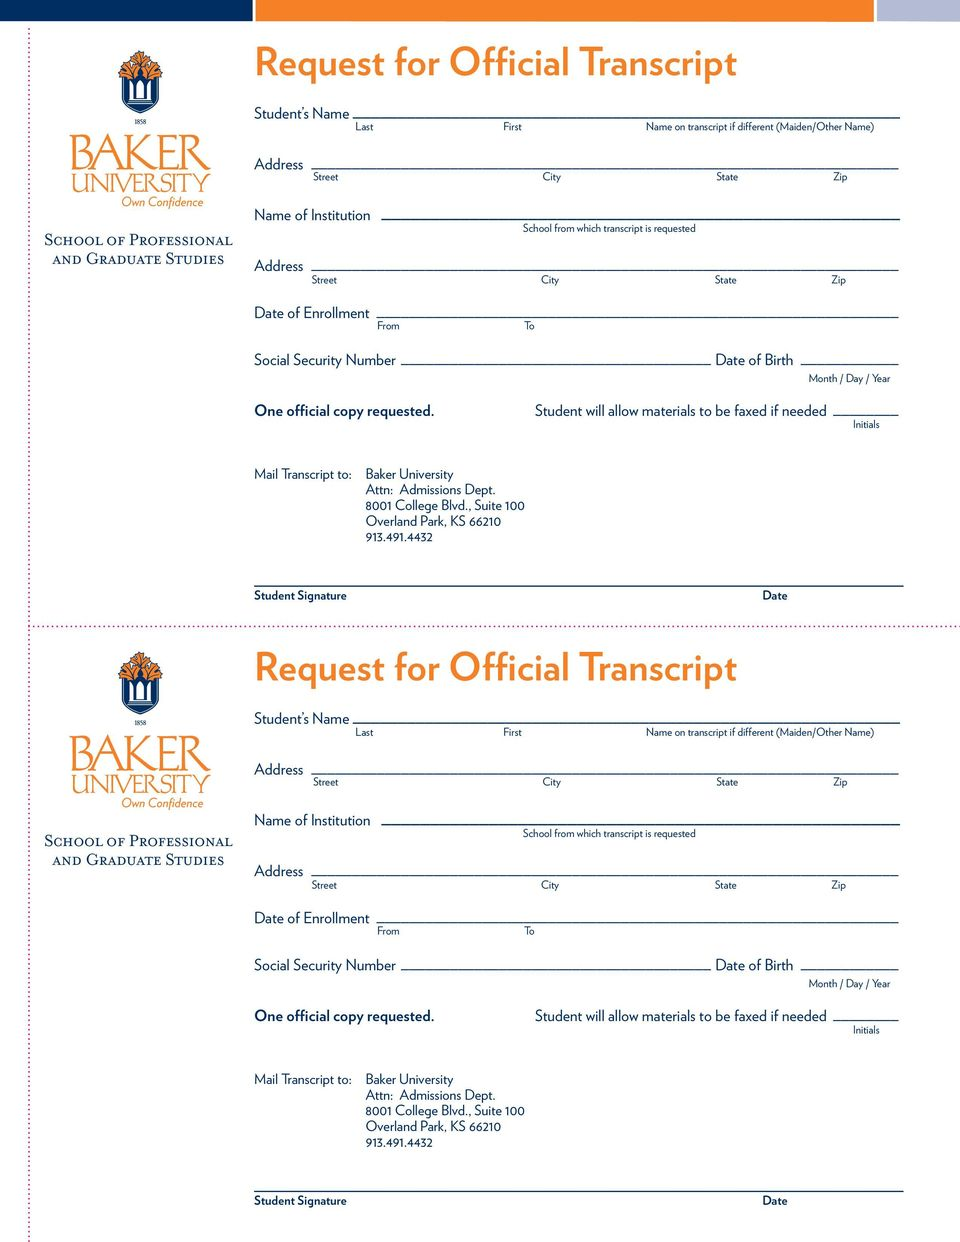 Student will allow materials to be faxed if needed Initials Mail Transcript to: Baker University Attn: Admissions Dept. 8001 College Blvd., Suite 100 Overland Park, KS 66210 913.491.